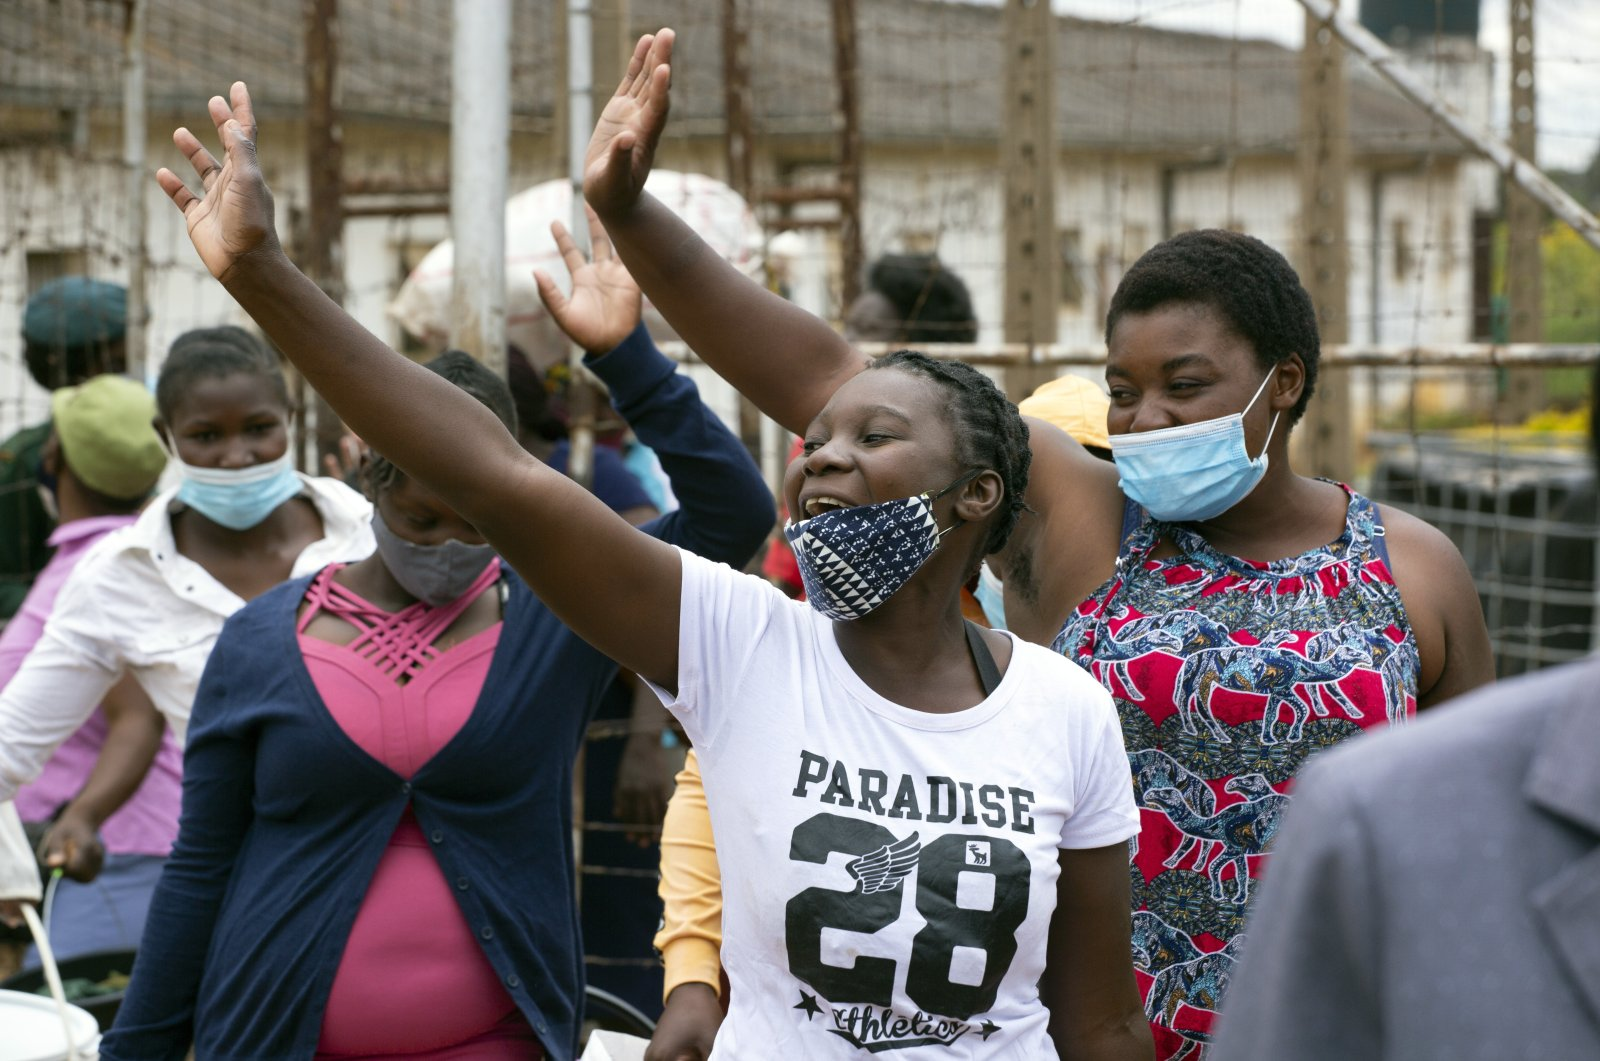 Female prisoners wave goodbye to their fellow inmates following their release from Chikurubi prison on the outskirts of Harare, Zimbabwe, April 17, 2021. (AP Photo)